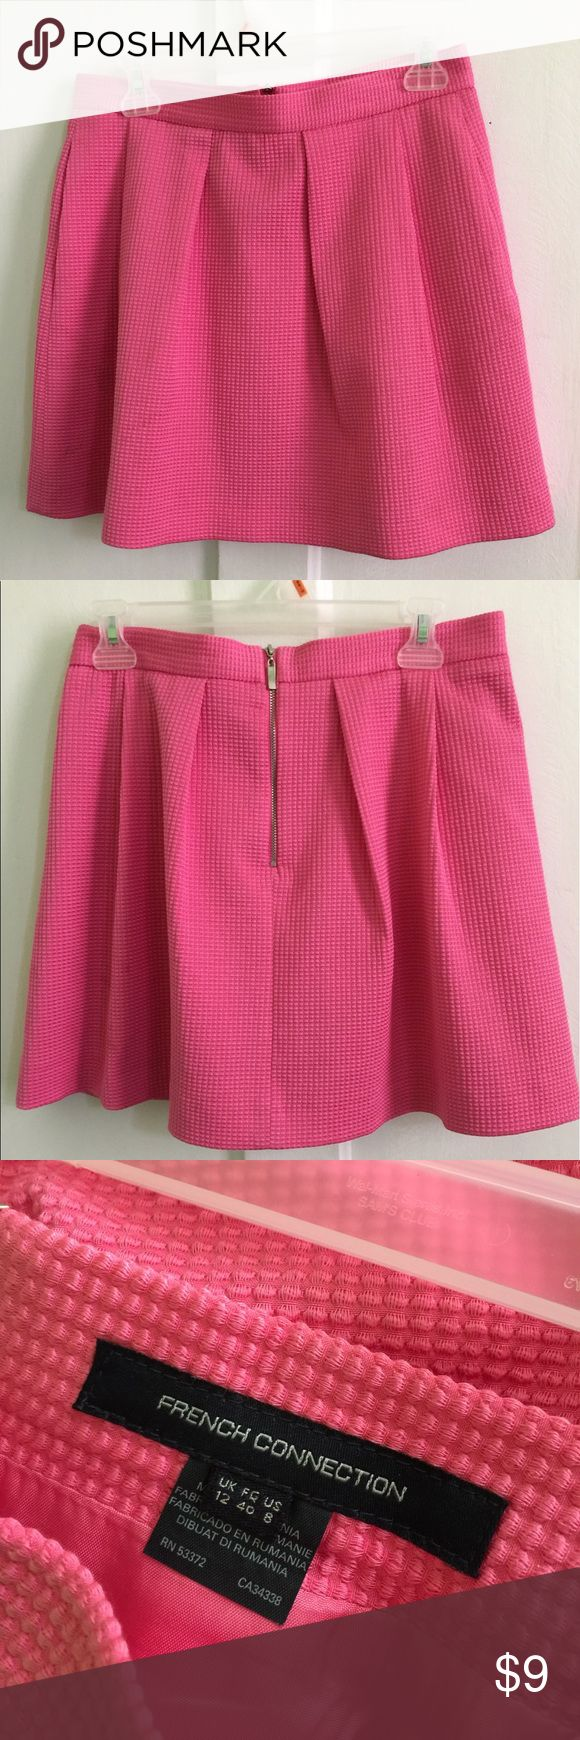 Pink French Connection Mini Skirt, Size 8 Adorable pink mini skirt from French connection, size 8 - but runs more like a 6. Only worn once. French Connection Skirts Mini